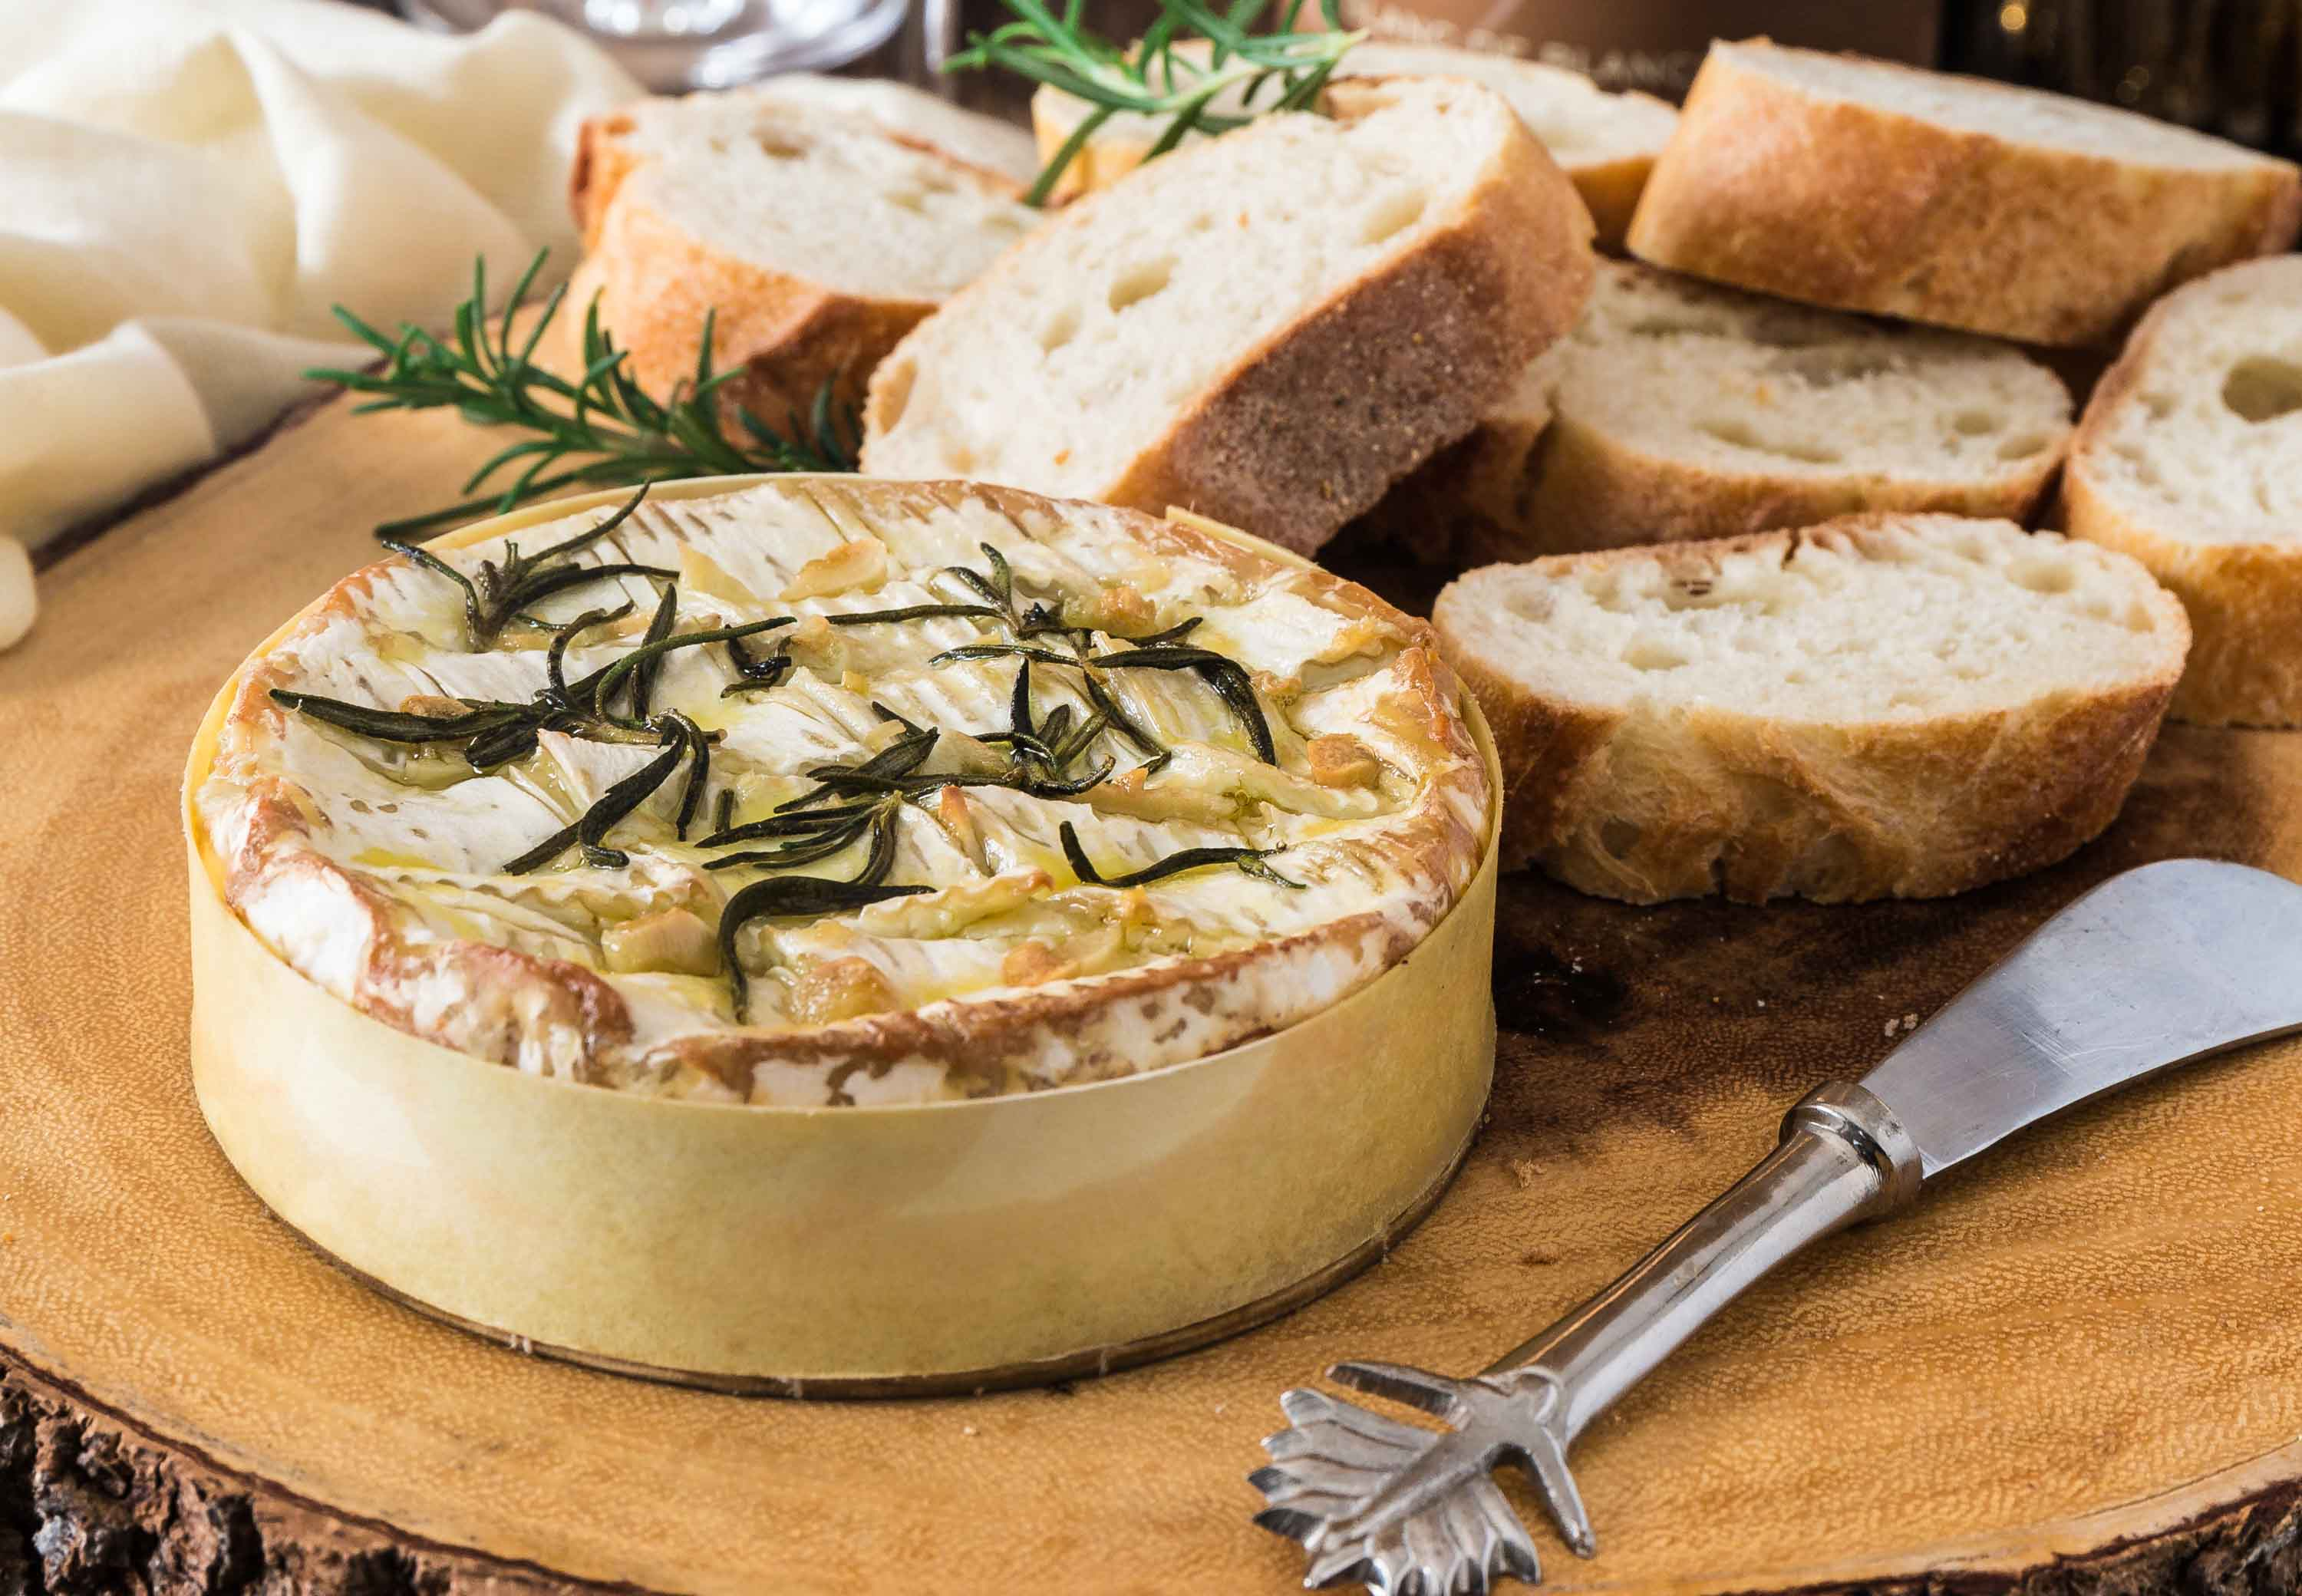 Camembert cheese photo